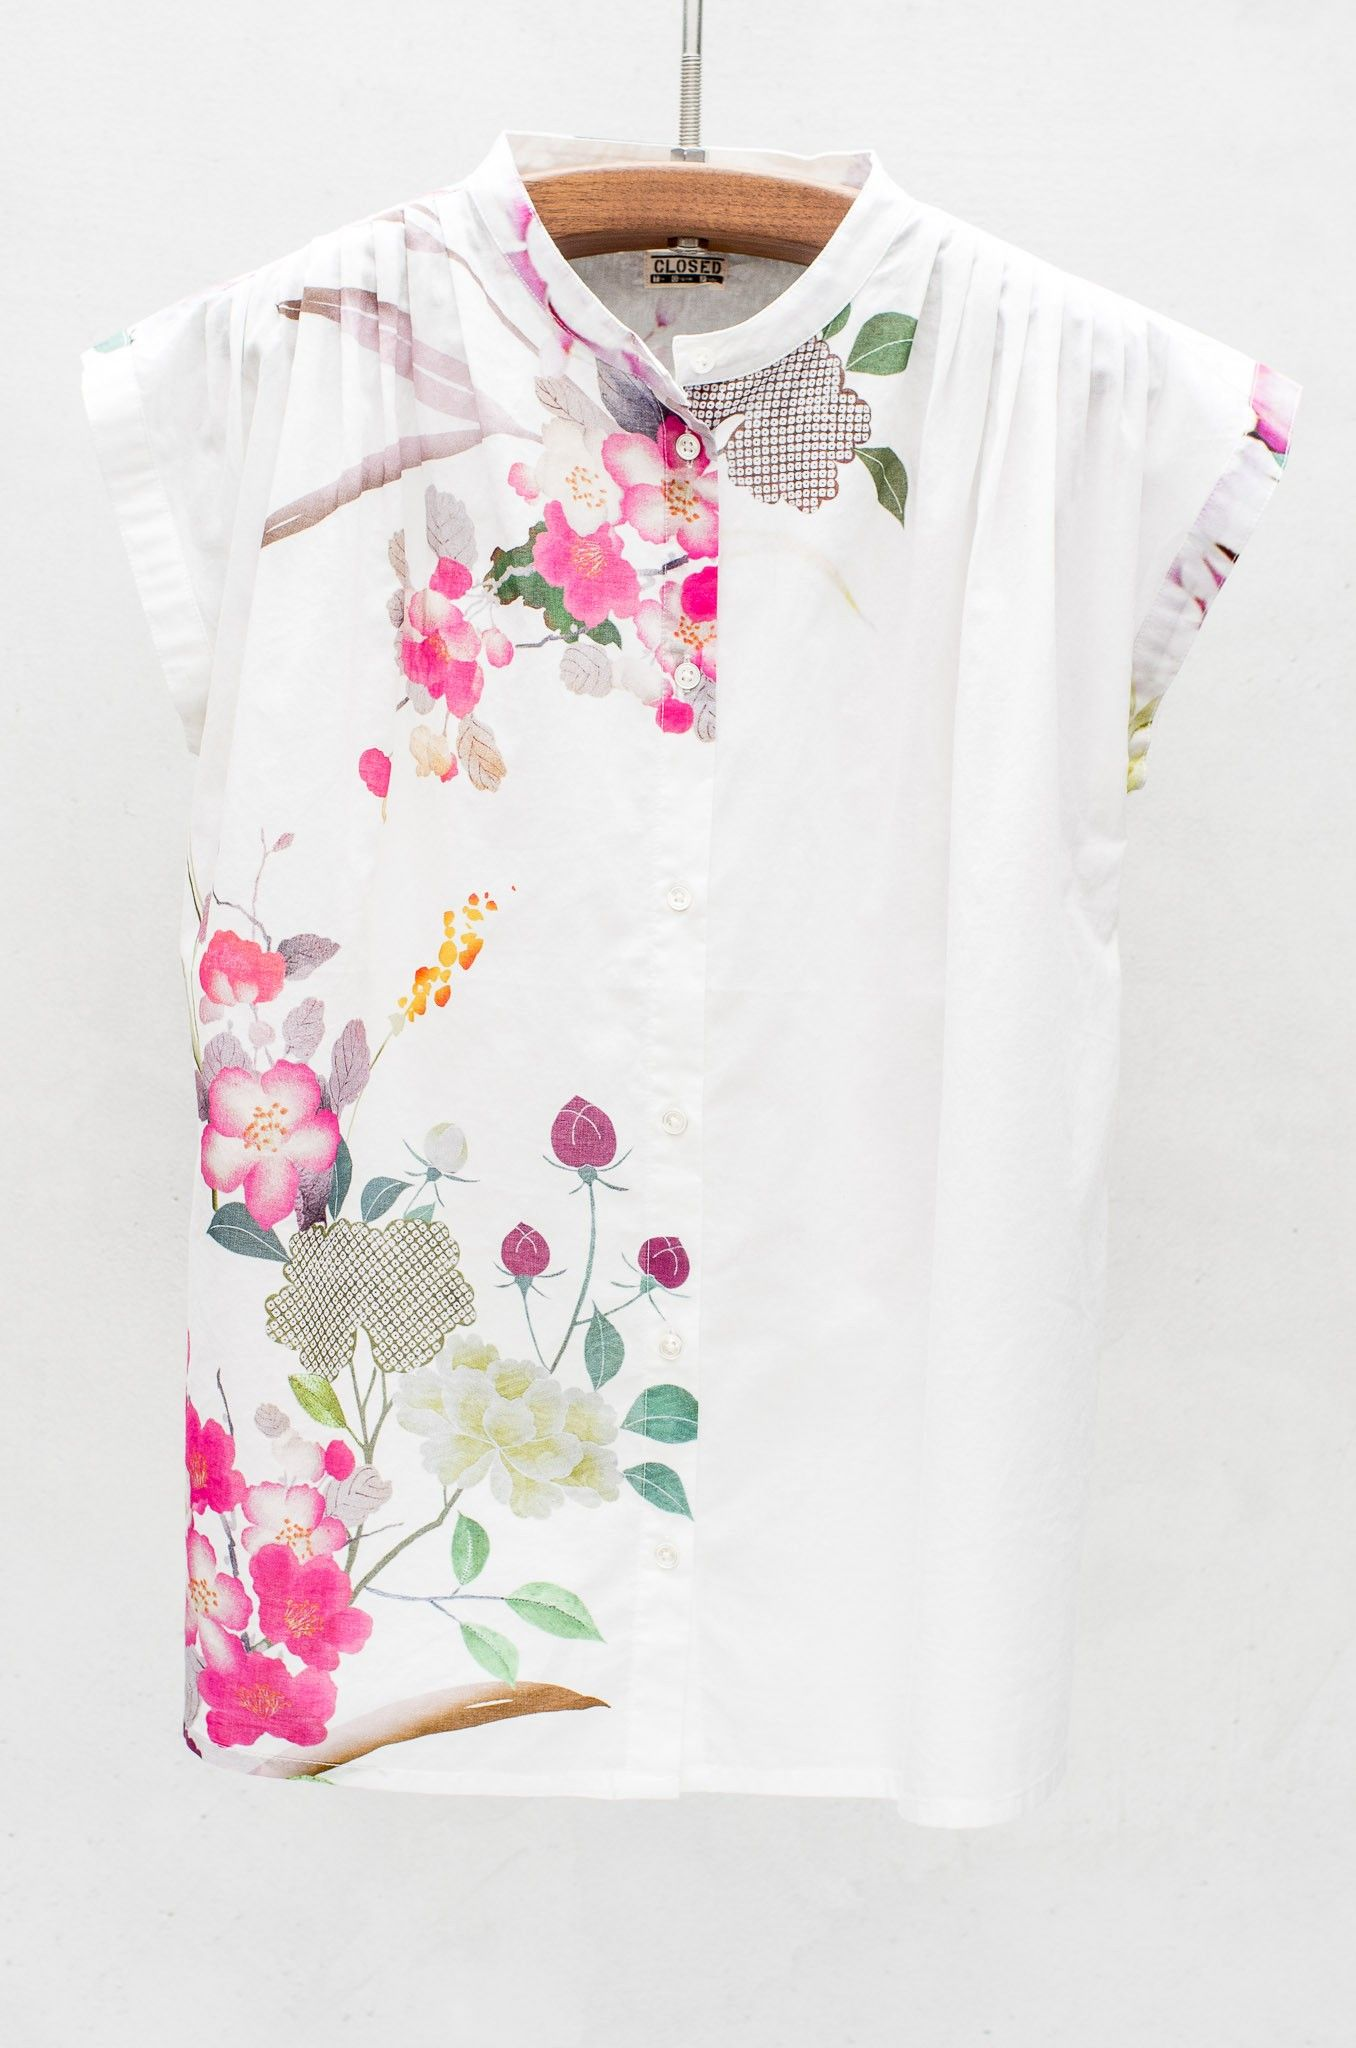 Pin by Laurel Lamour on TOP SHOP | Pinterest | Moda, Ropa and Vestidos